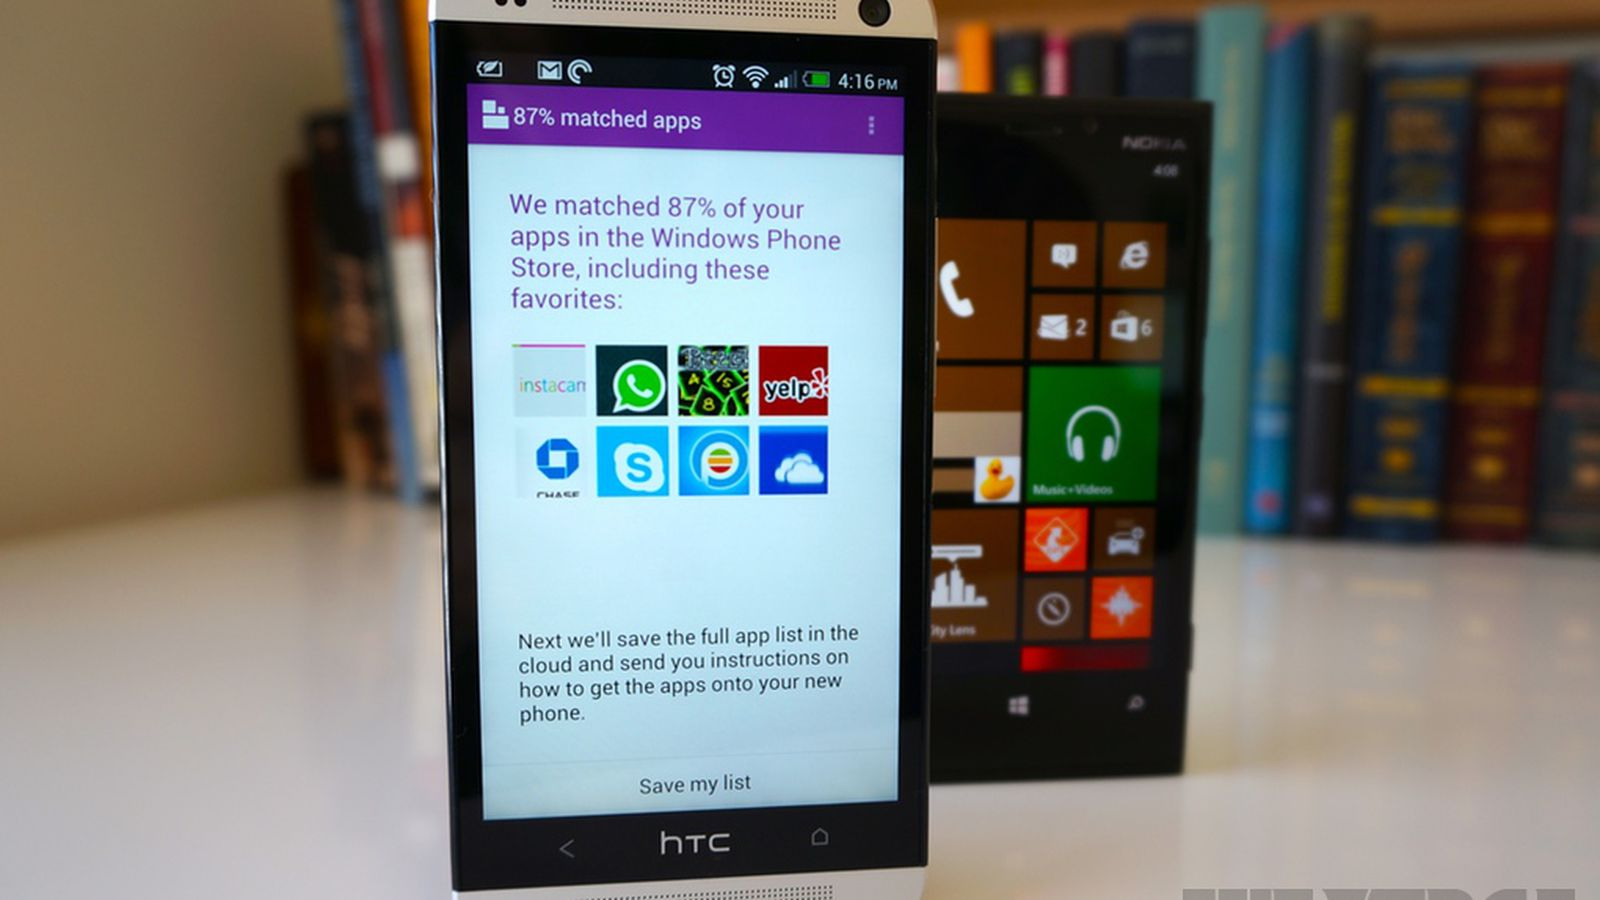 Will Windows Phone Get More Apps